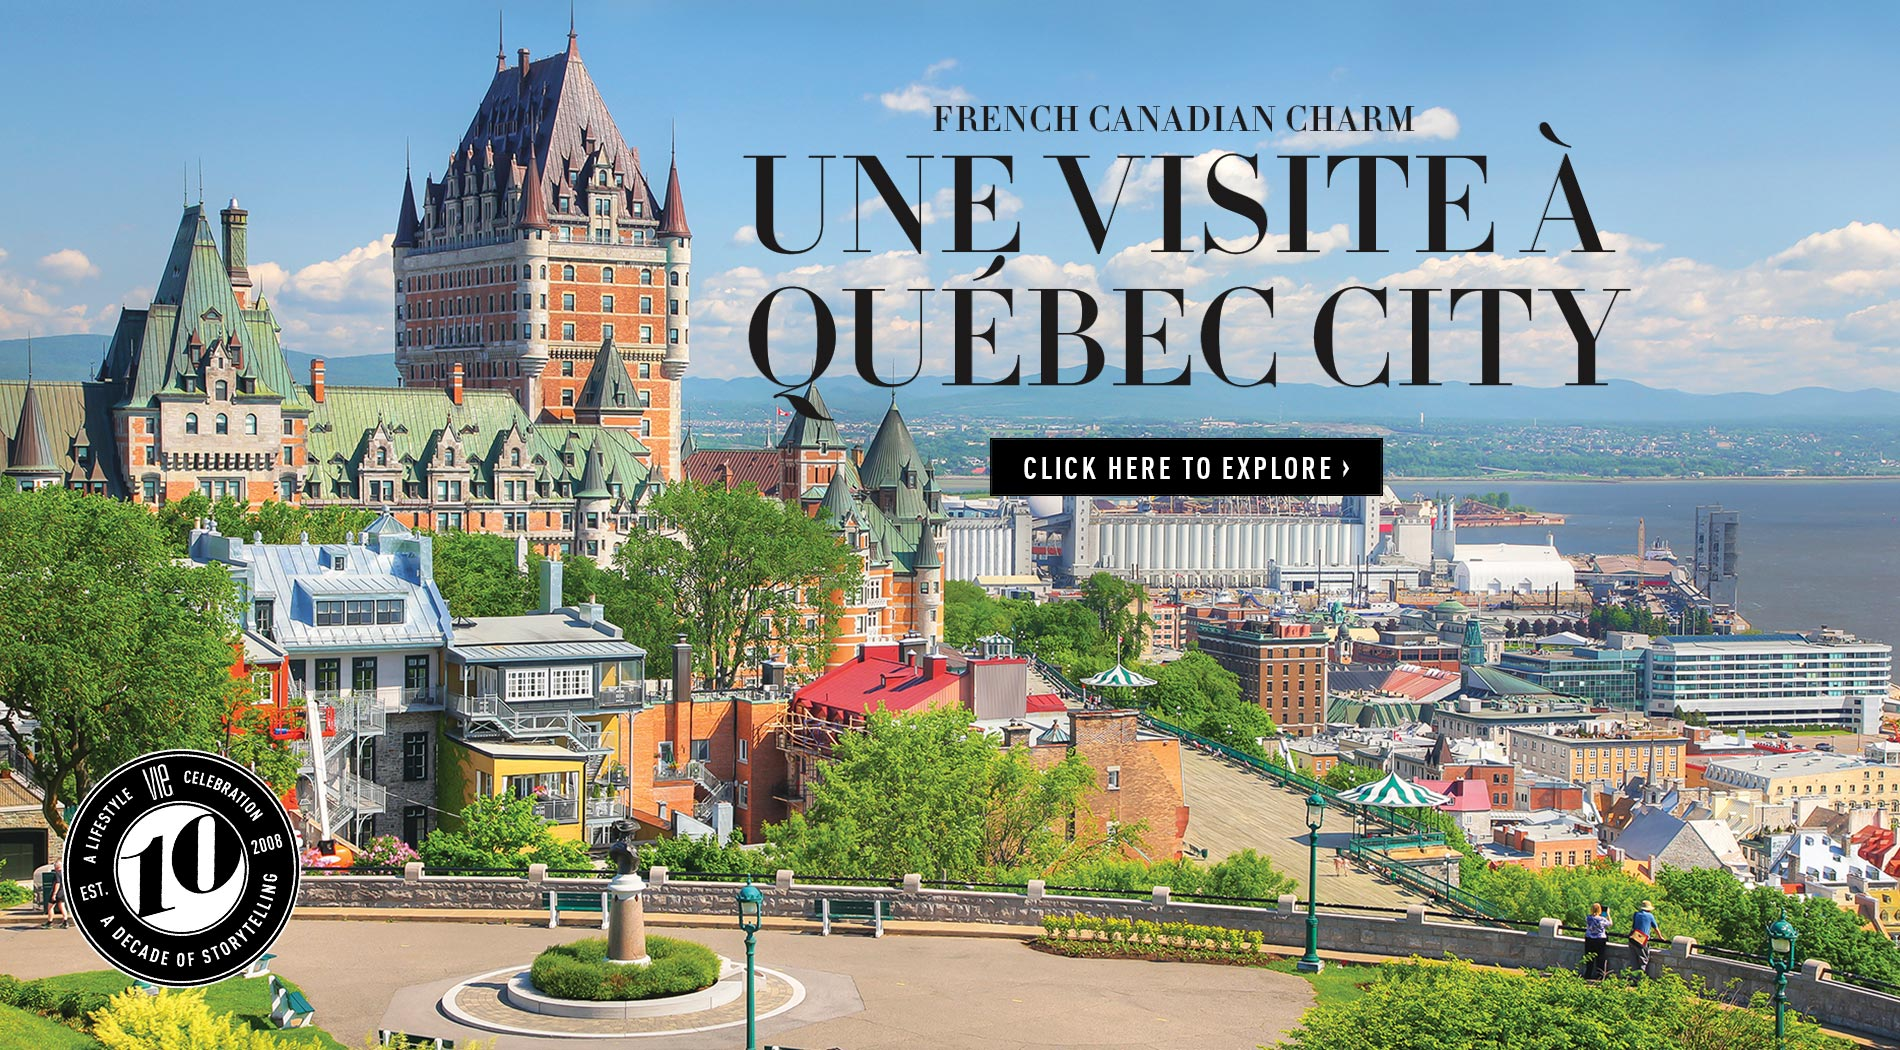 VIE Magazine - June 2018 Travel & Tech Issue - Quebec City, French Canadian Charm